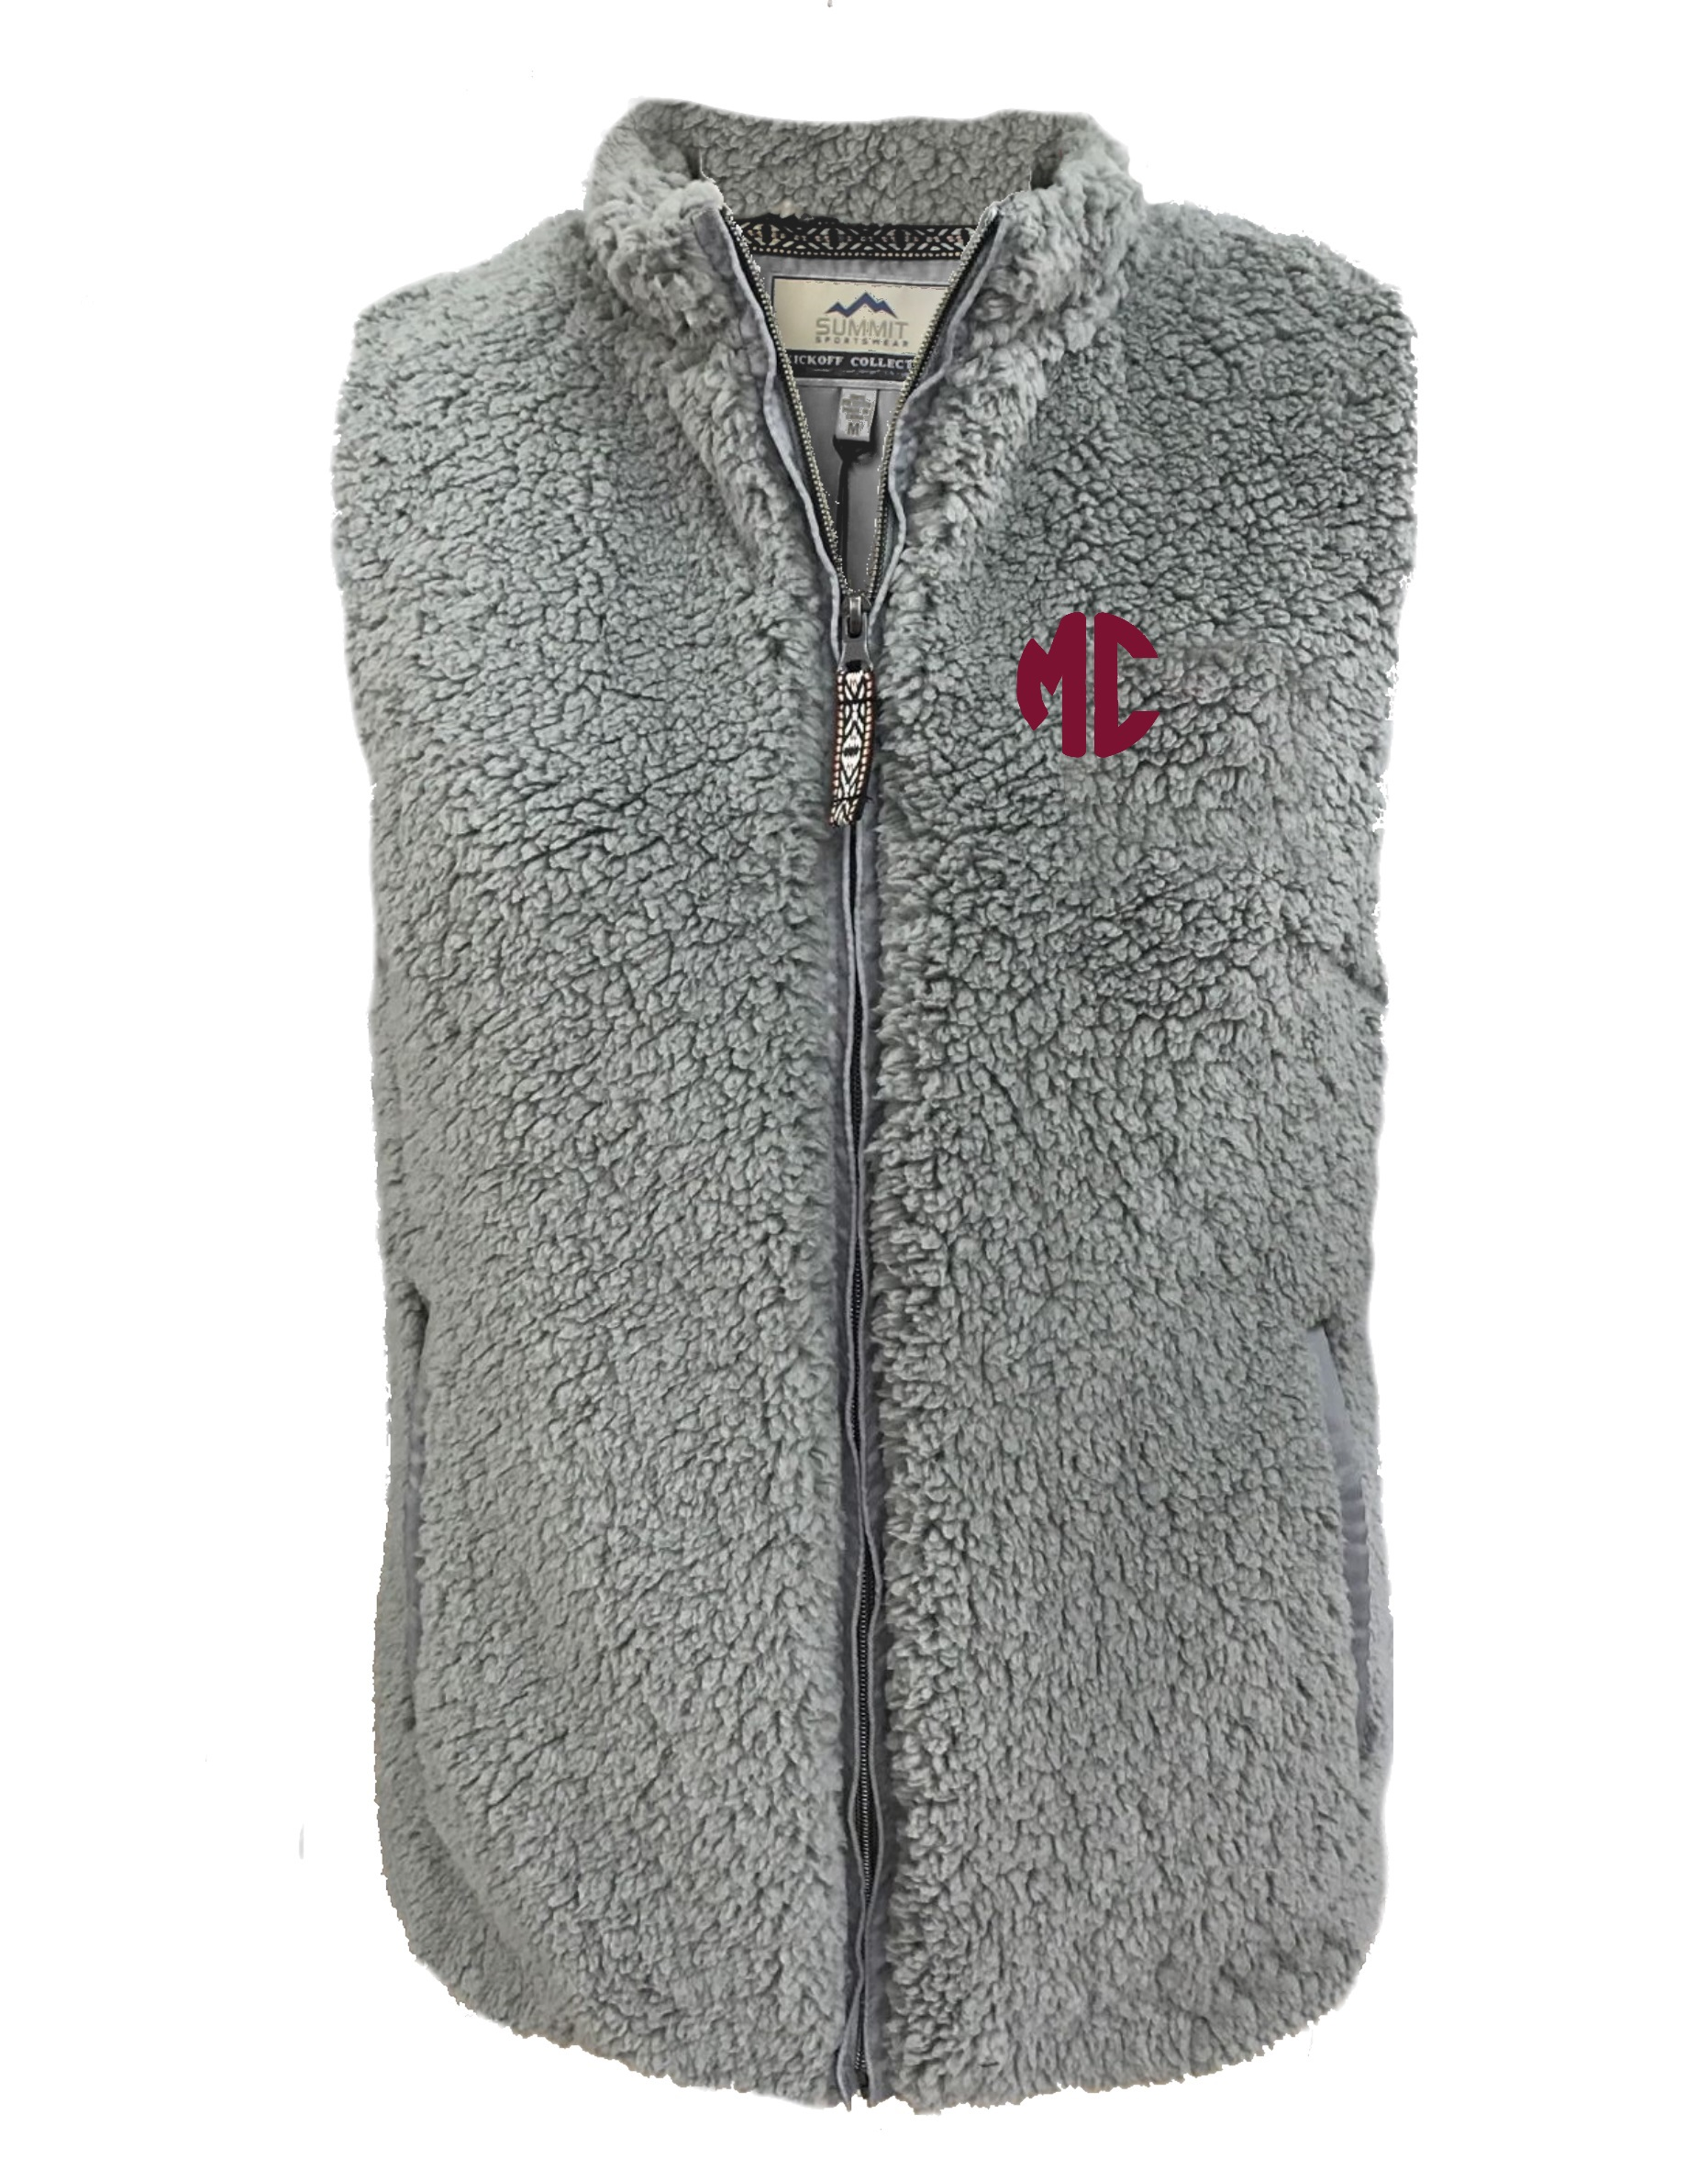 Image for the Sherpa Vest Charcoal MC Summit Sportswear product